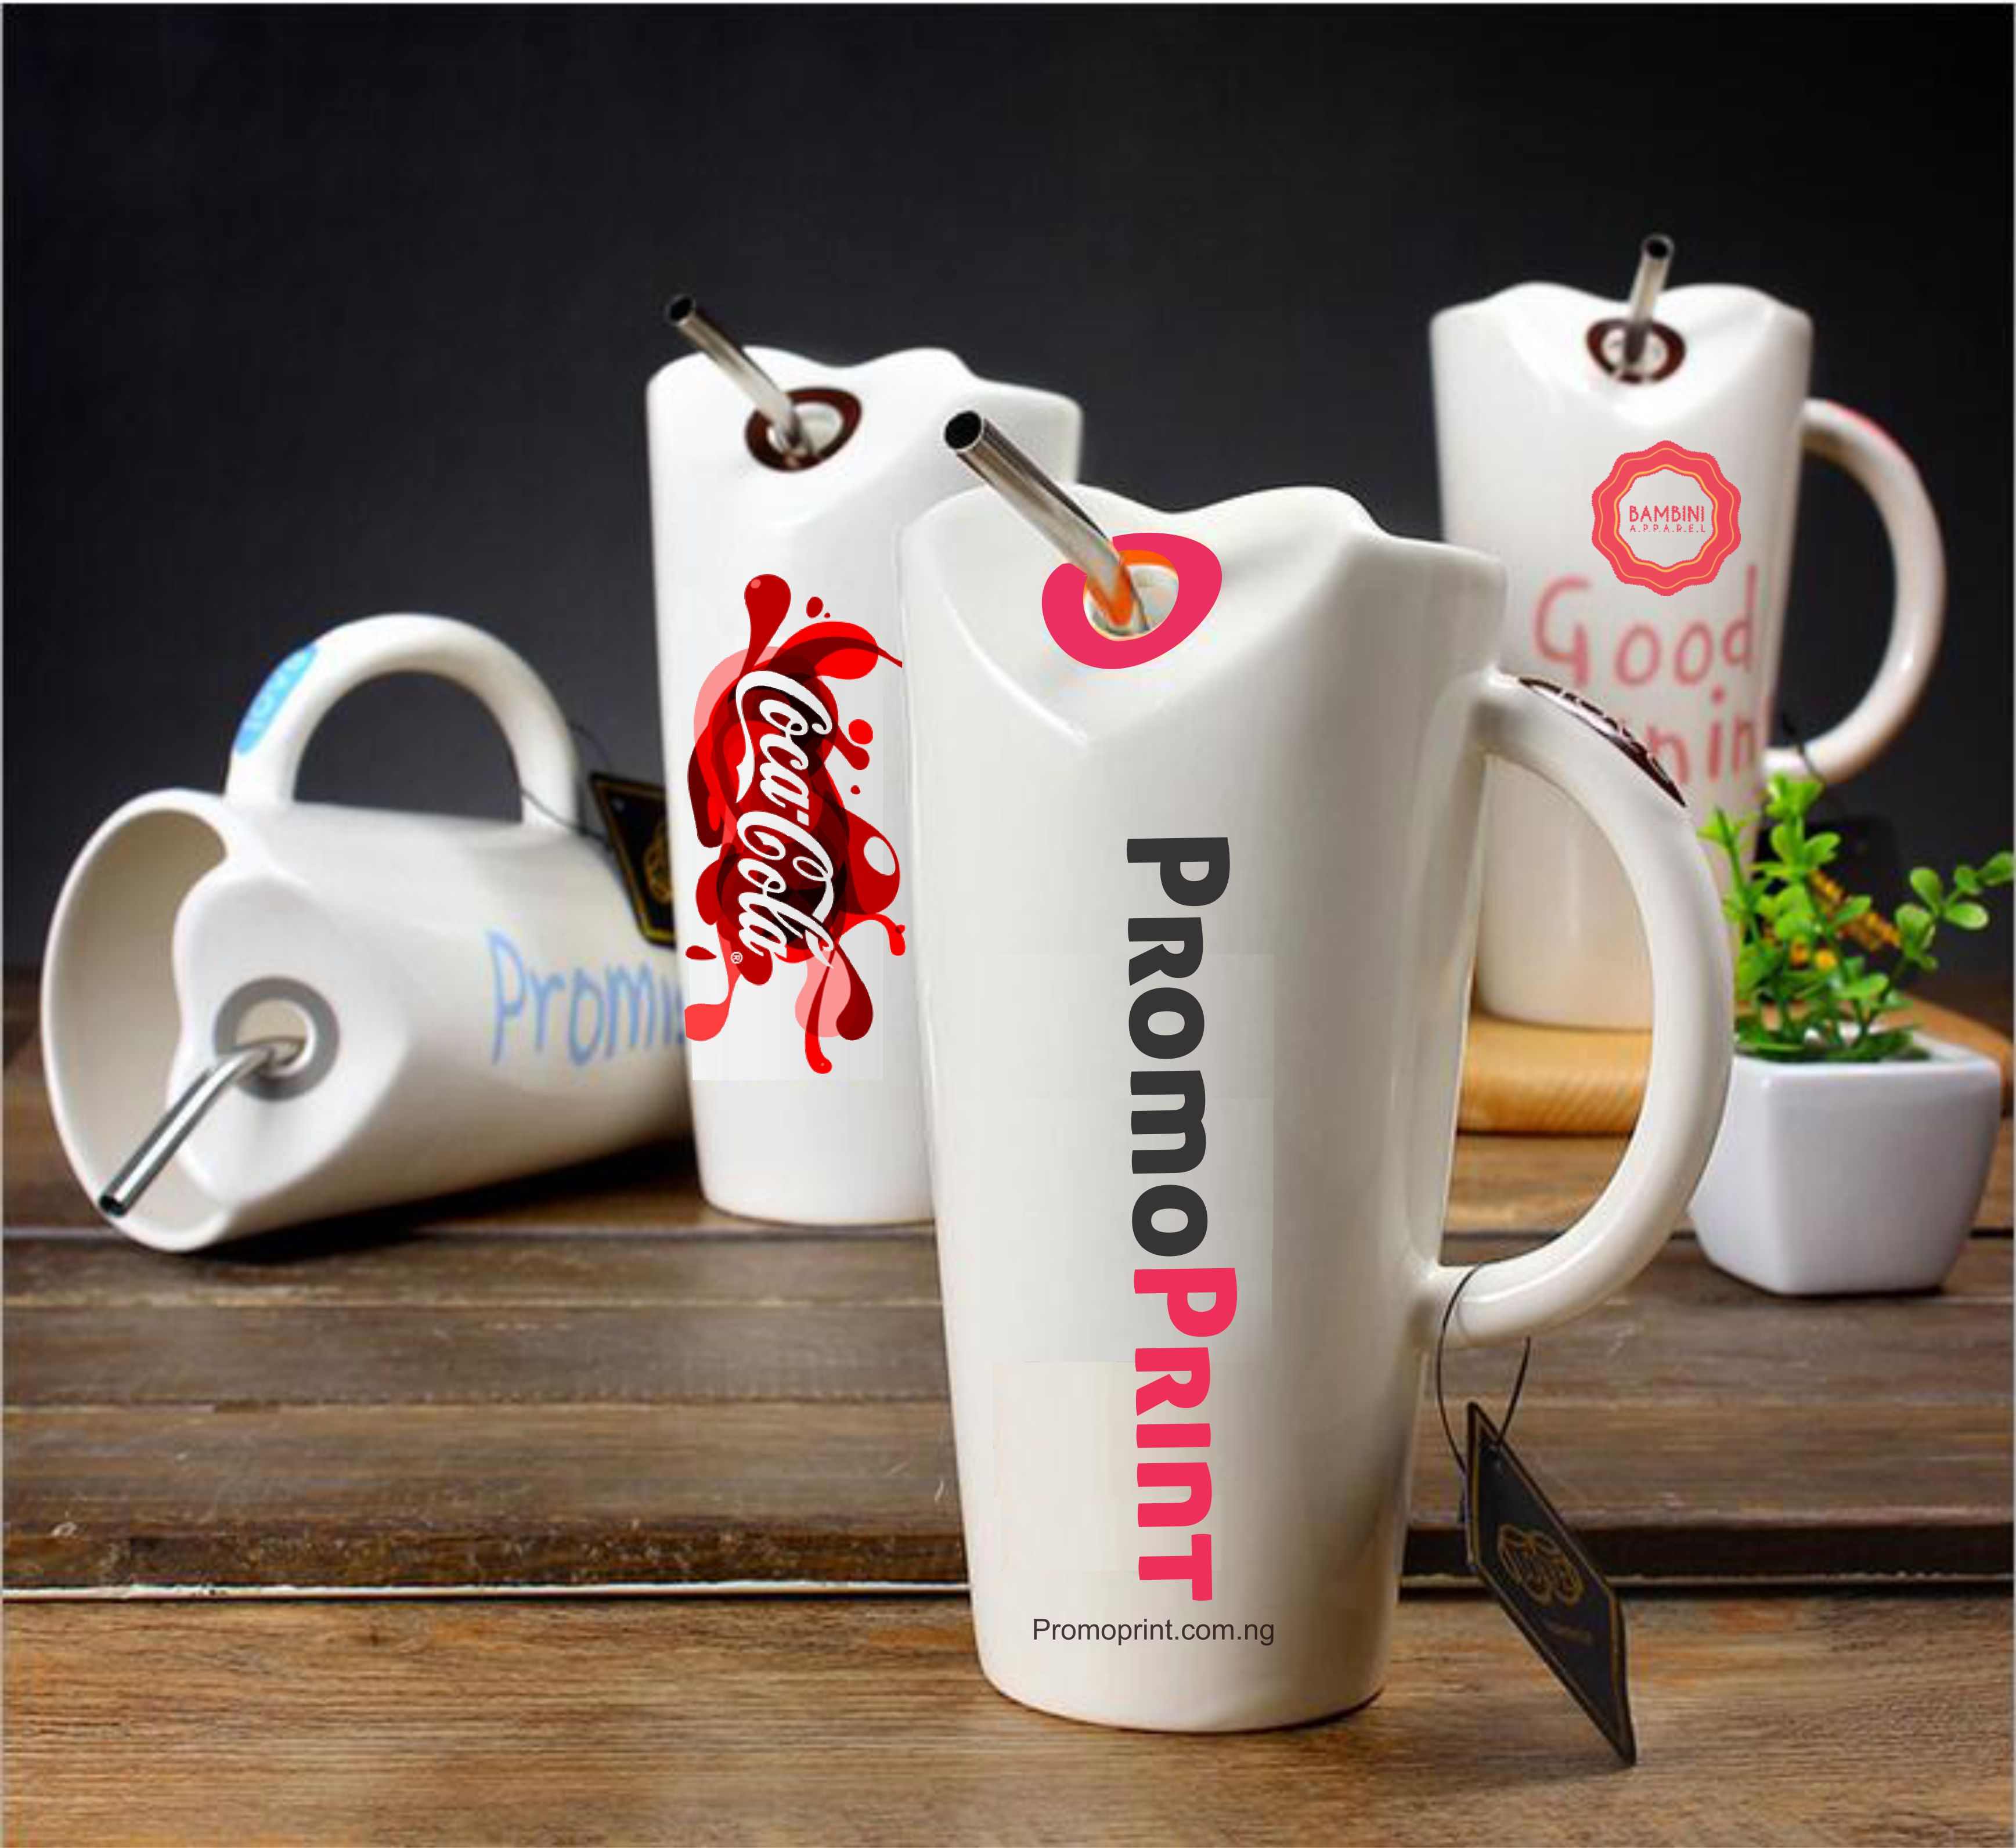 MARKETING WITH PROMOTIONAL MUGS